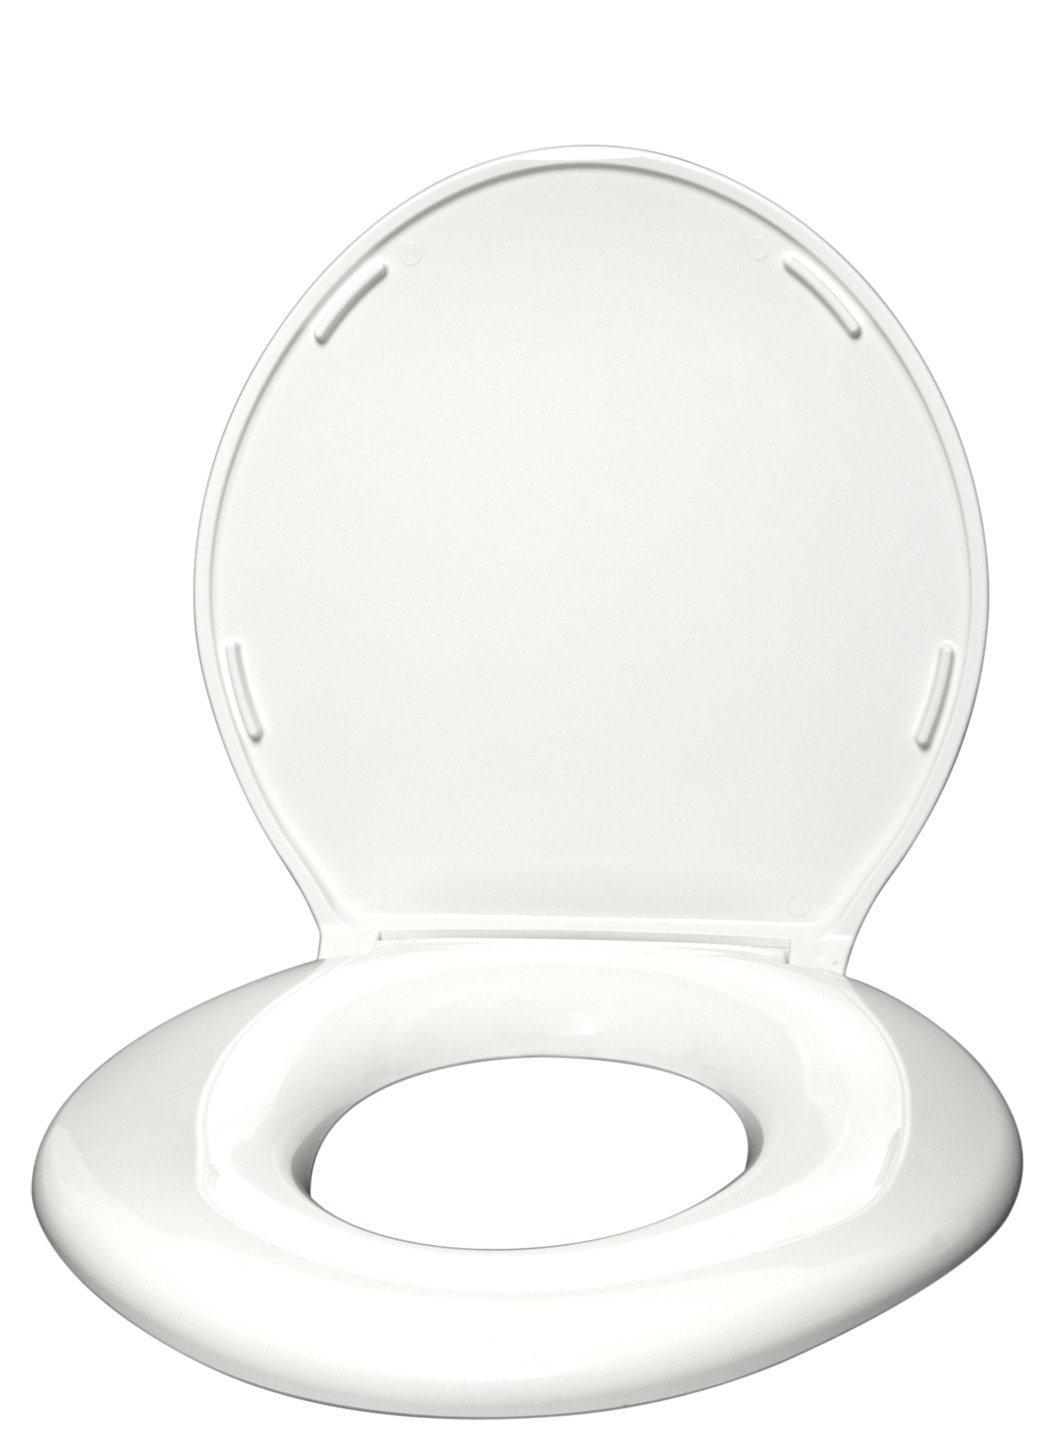 Toilet Seat Sizes Uk. The 800 Pound Toilet Seat For Plus Size People Extra Large Seats Heavy  Big And